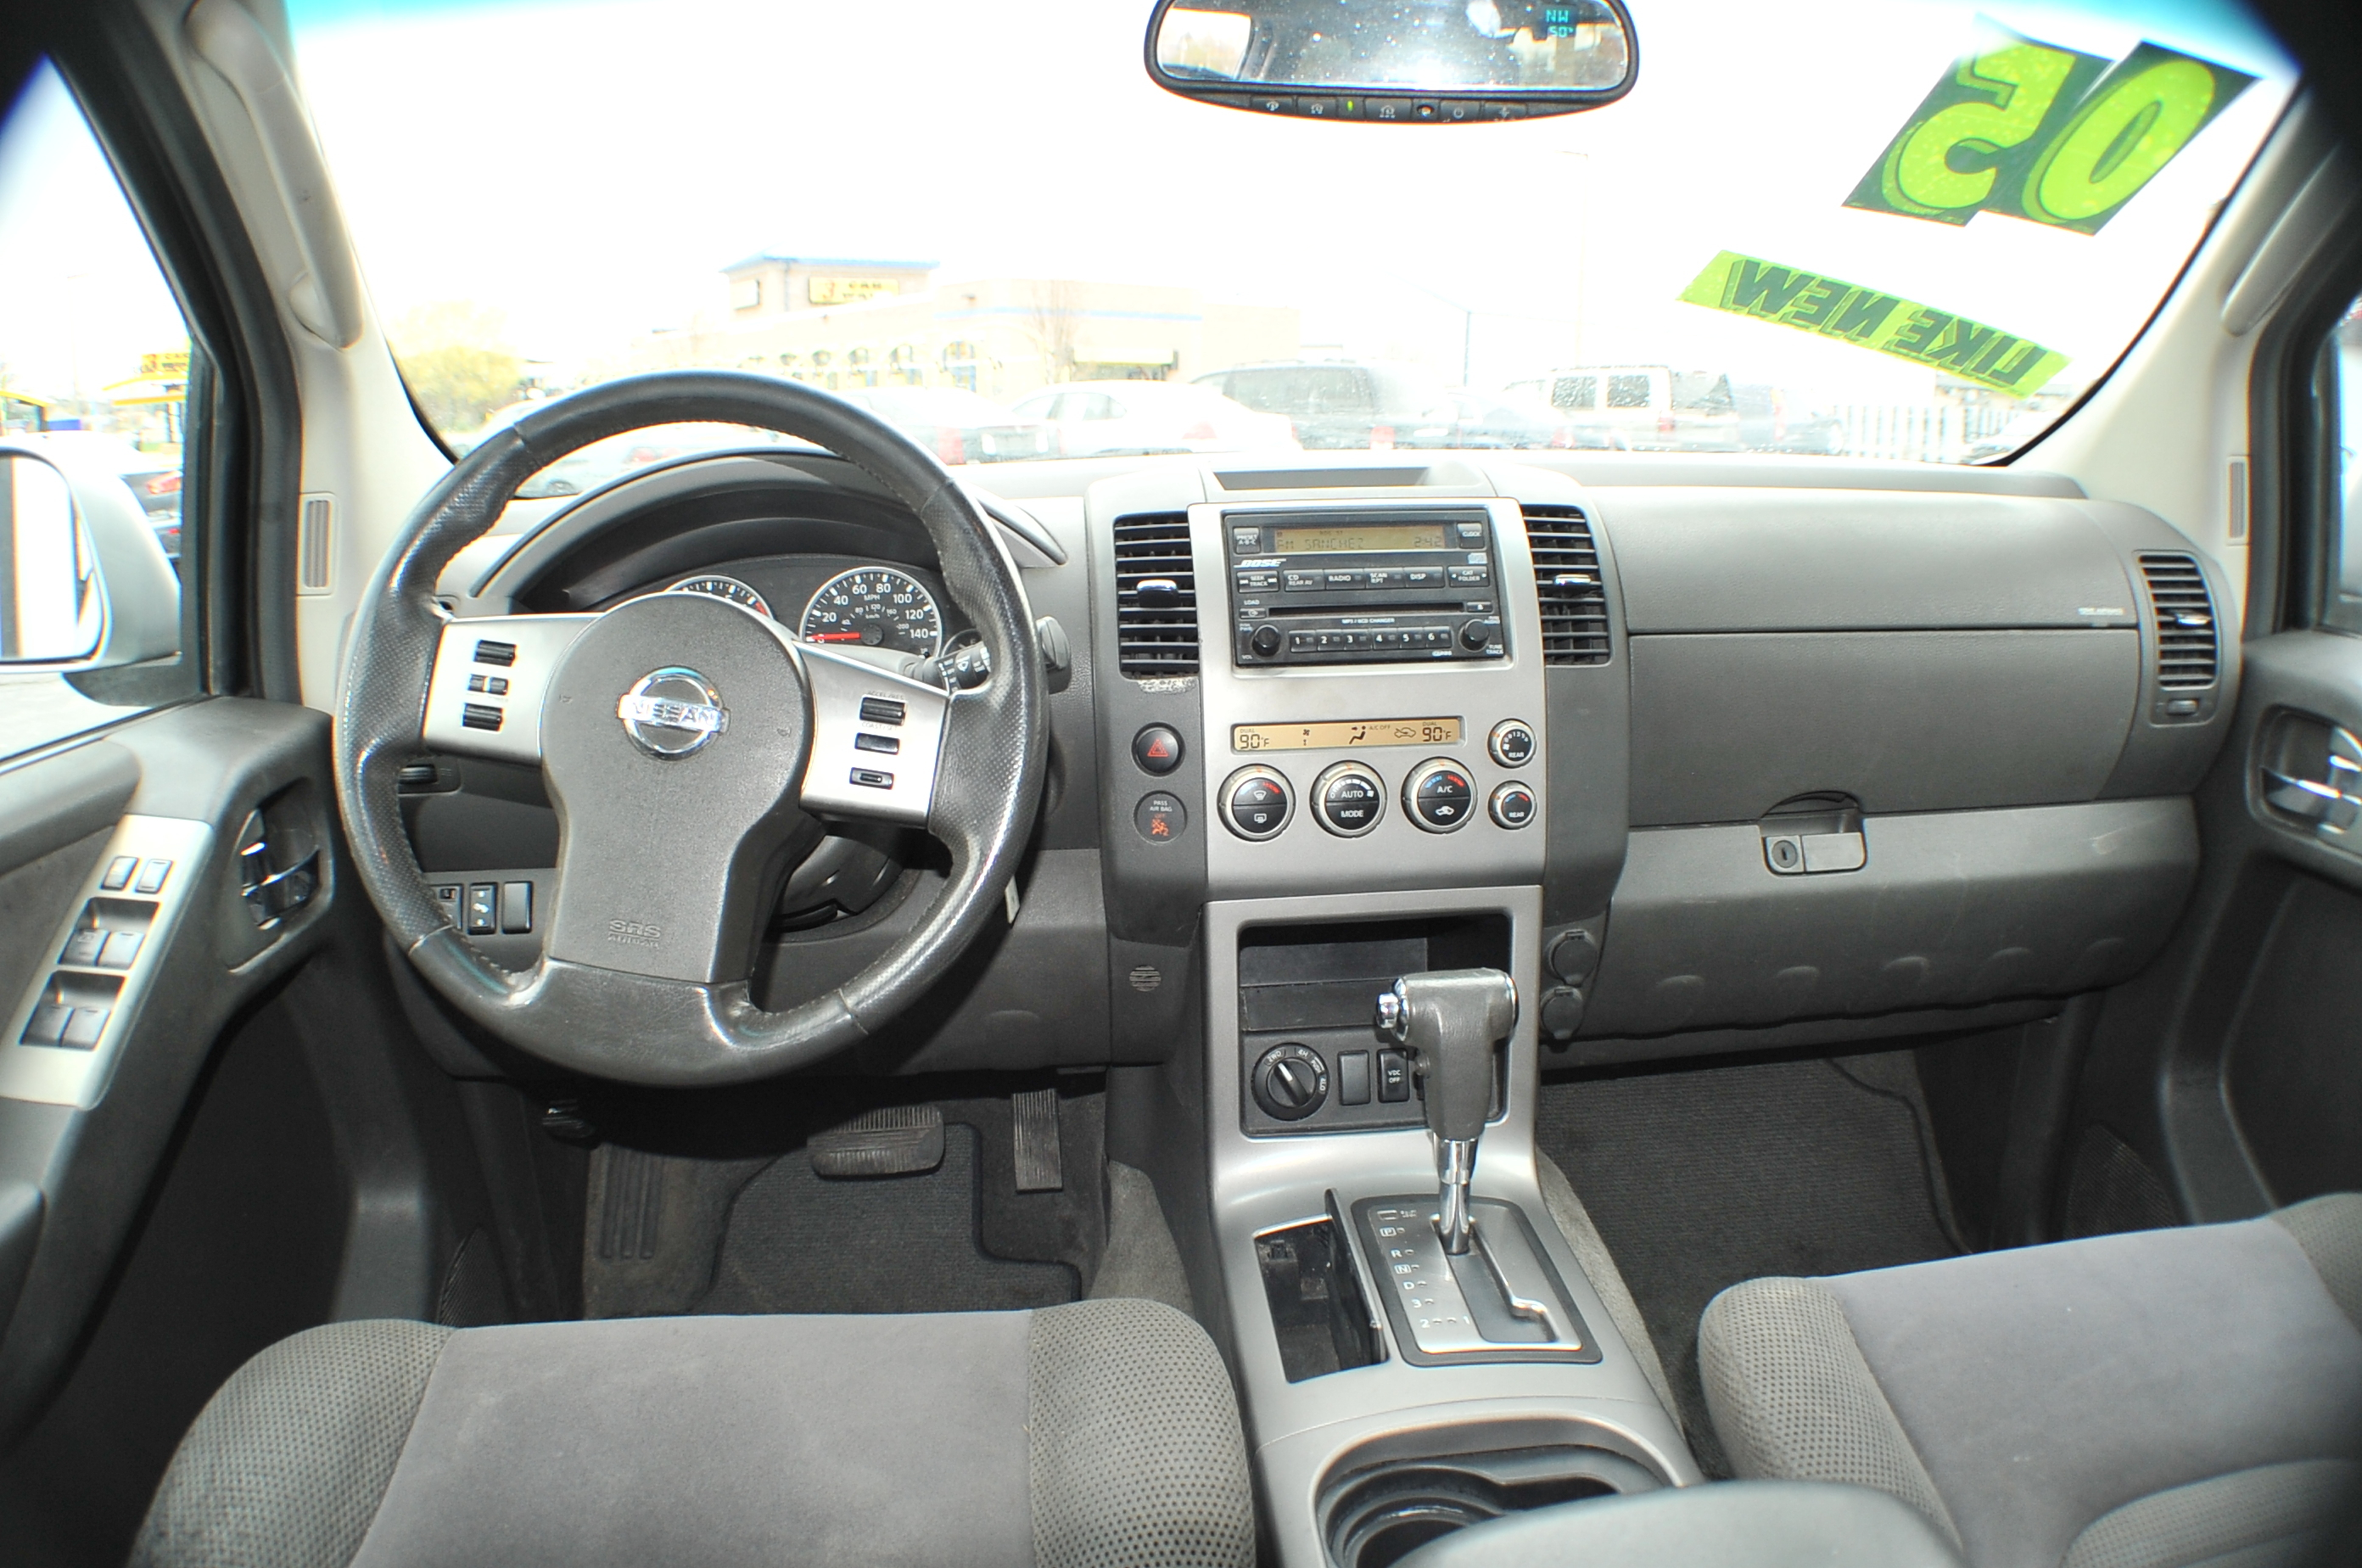 ... 2005 Nissan Pathfinder SE Silver Used SUV 4x4 Sale Fox River Grove  Grayslake Volo ...